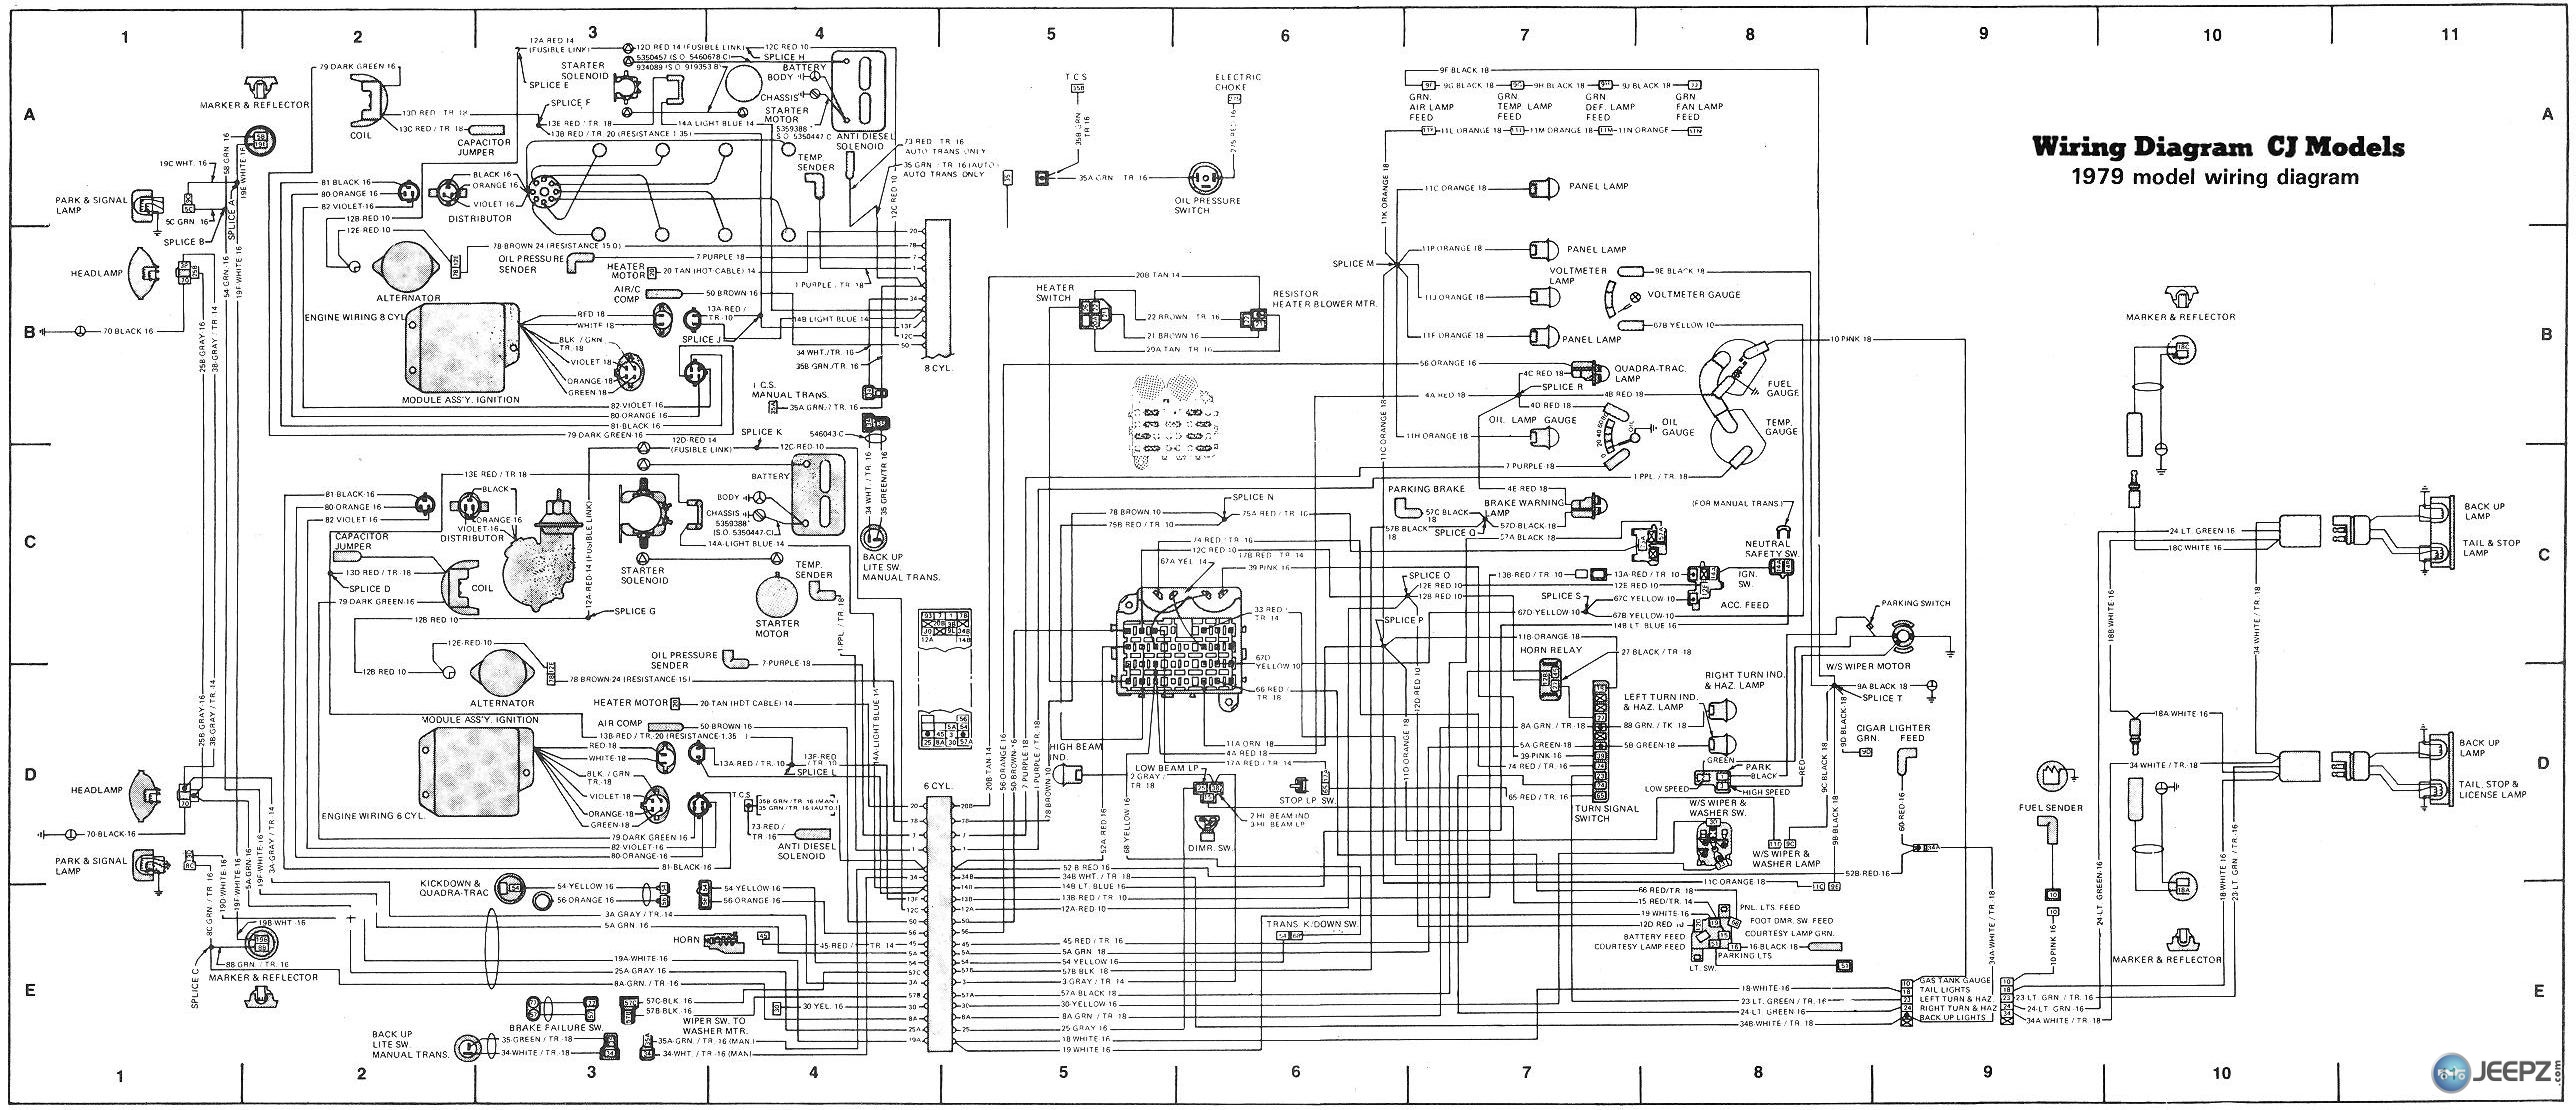 2748d1243285147 cj headlight wiring colors cj wiring diagram 1979 77 jeep wiring diagram wiring diagram data